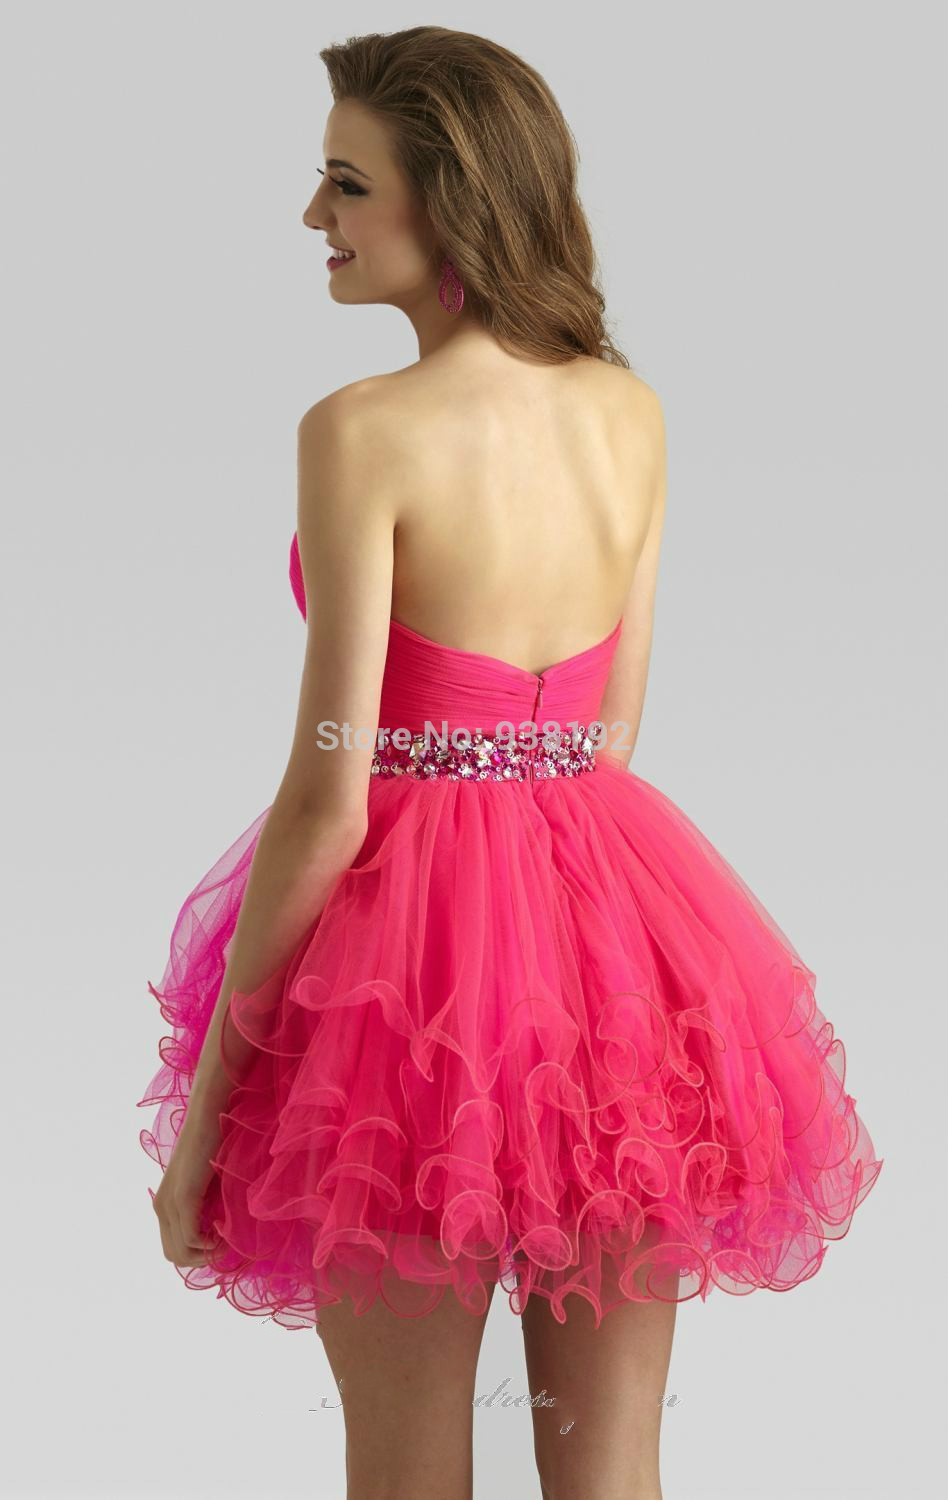 Kids Party Dresses Online - Ocodea.com